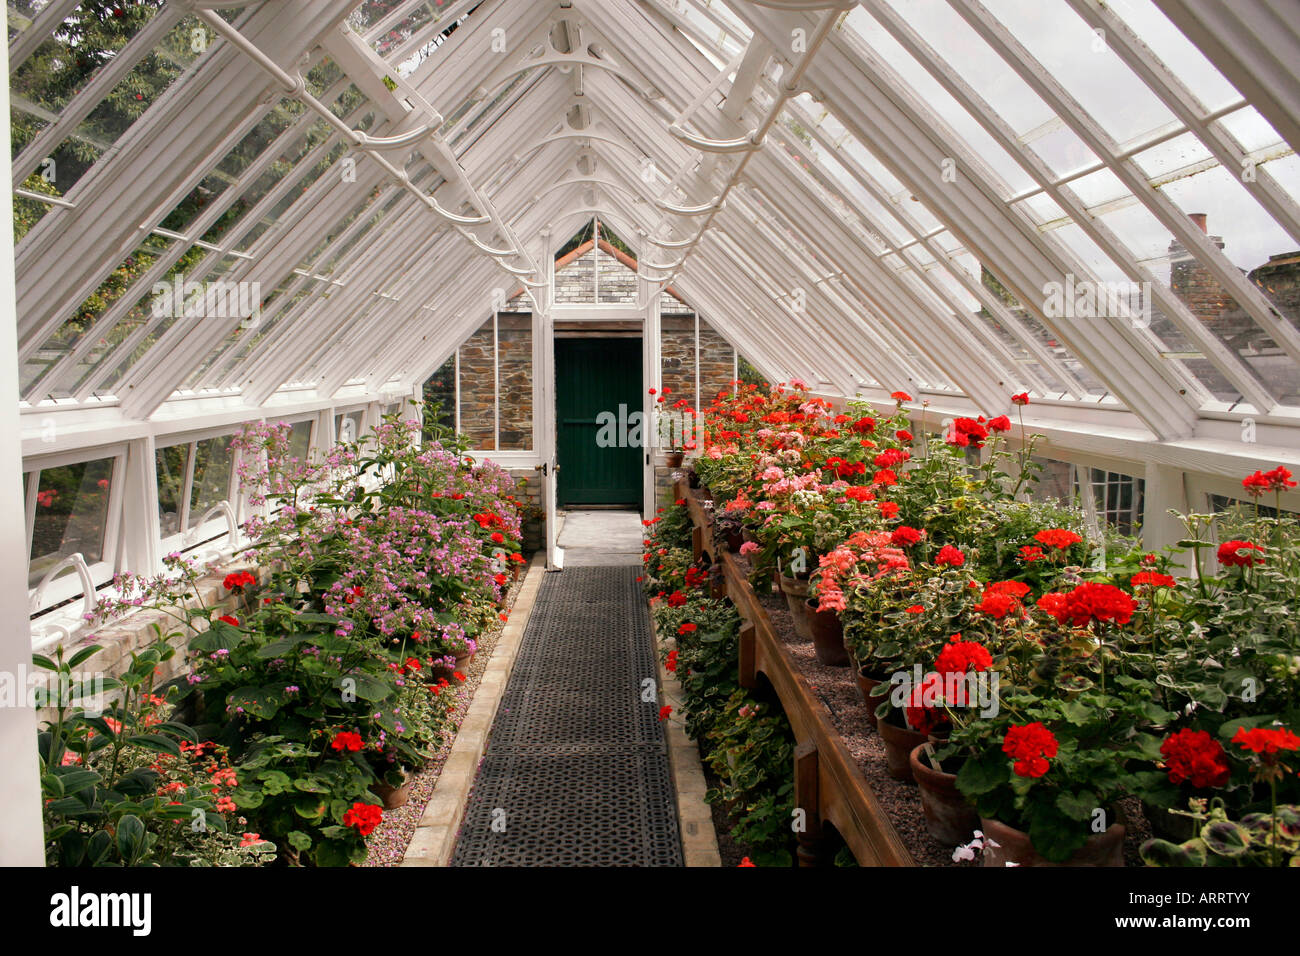 Inside A Victorian Greenhouse Stock Photo Royalty Free